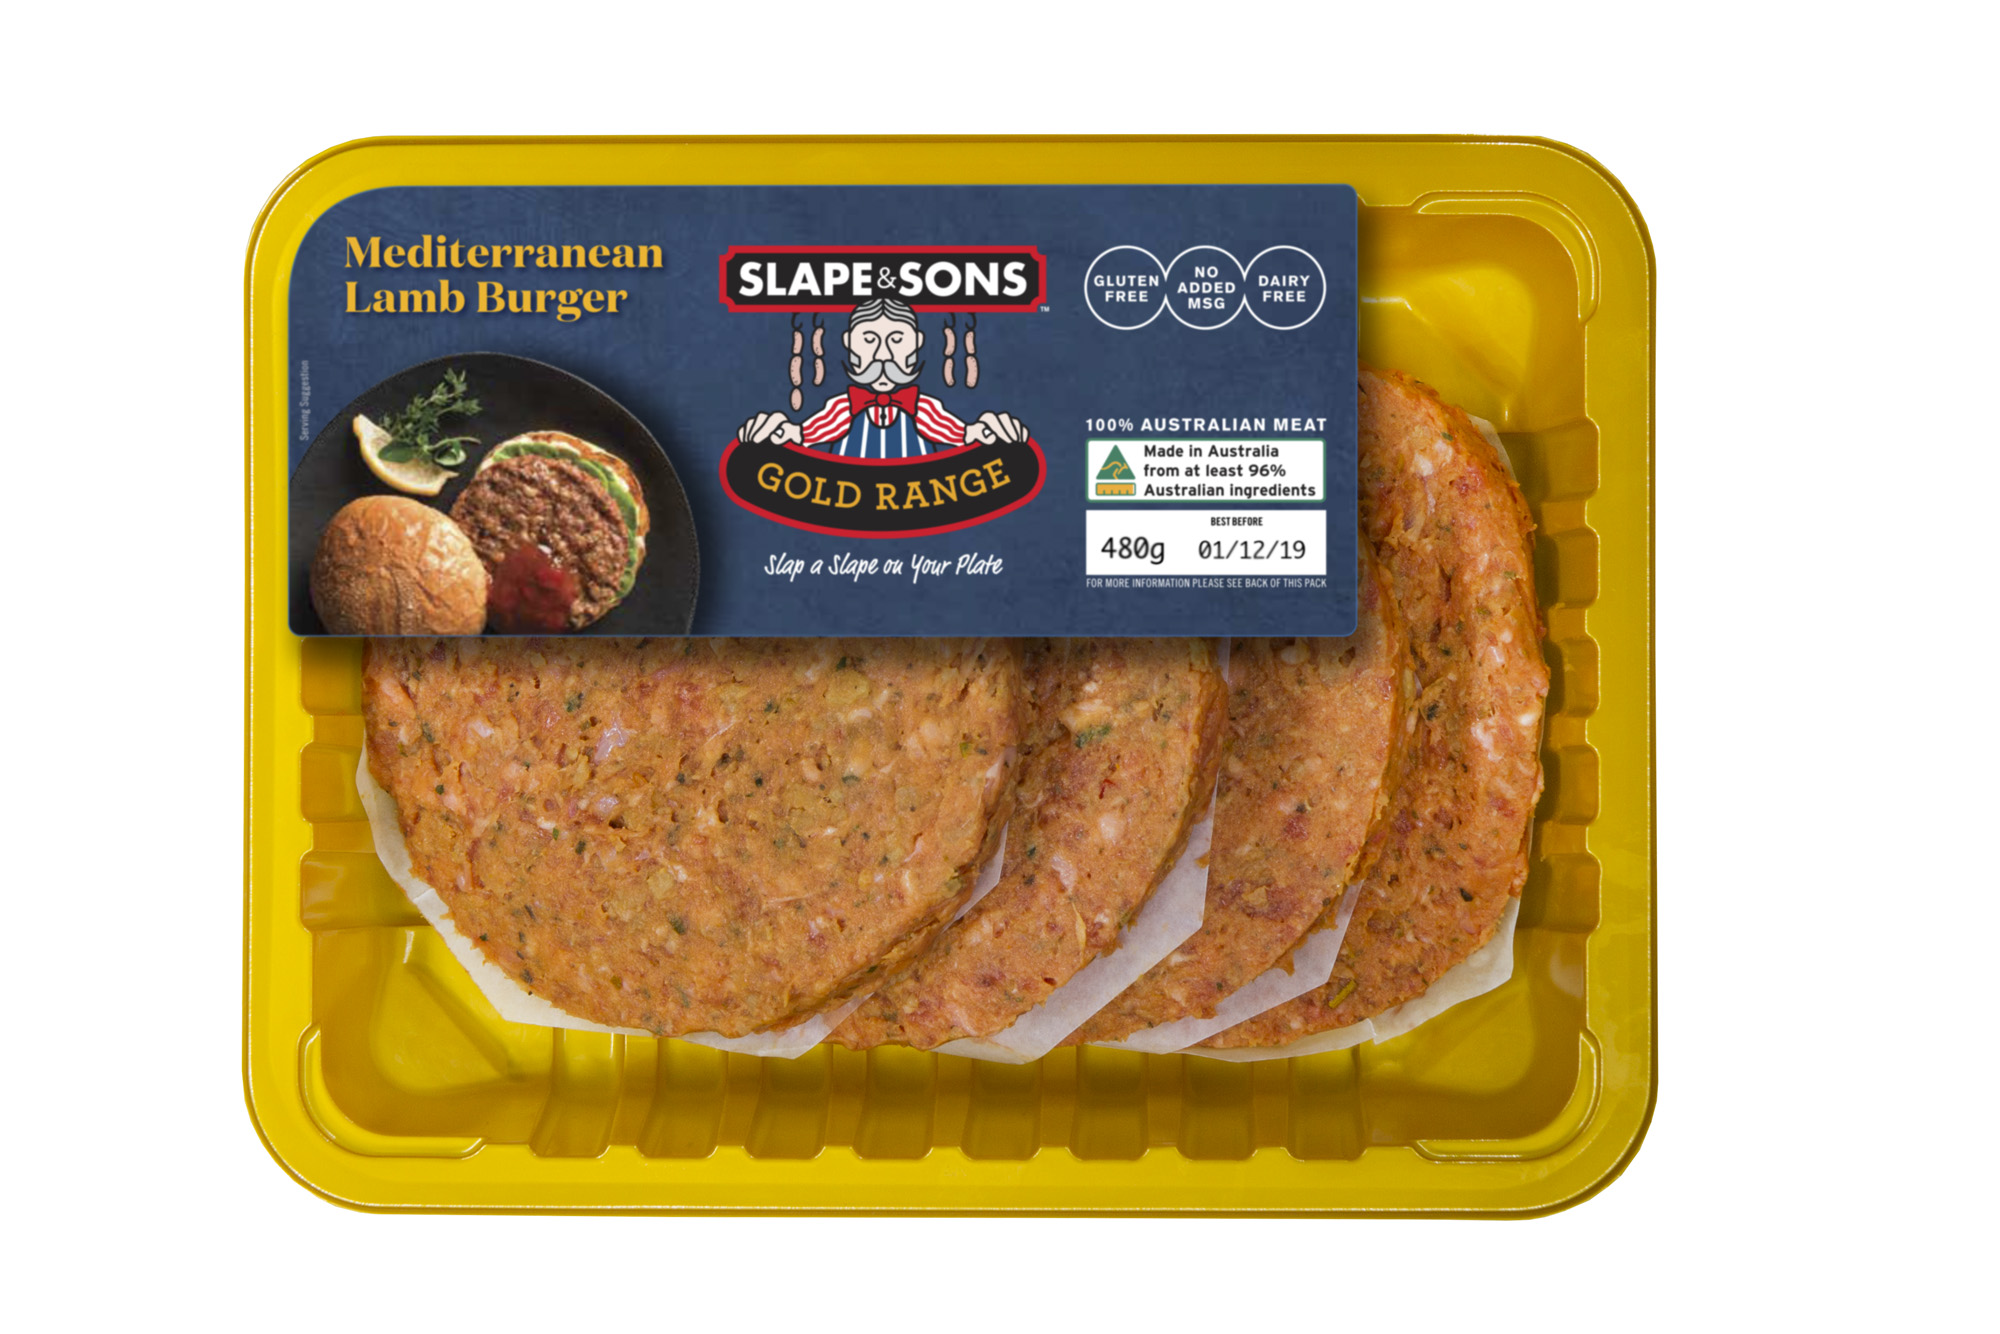 Slape and Sons - Mediterranean Lamb Burger